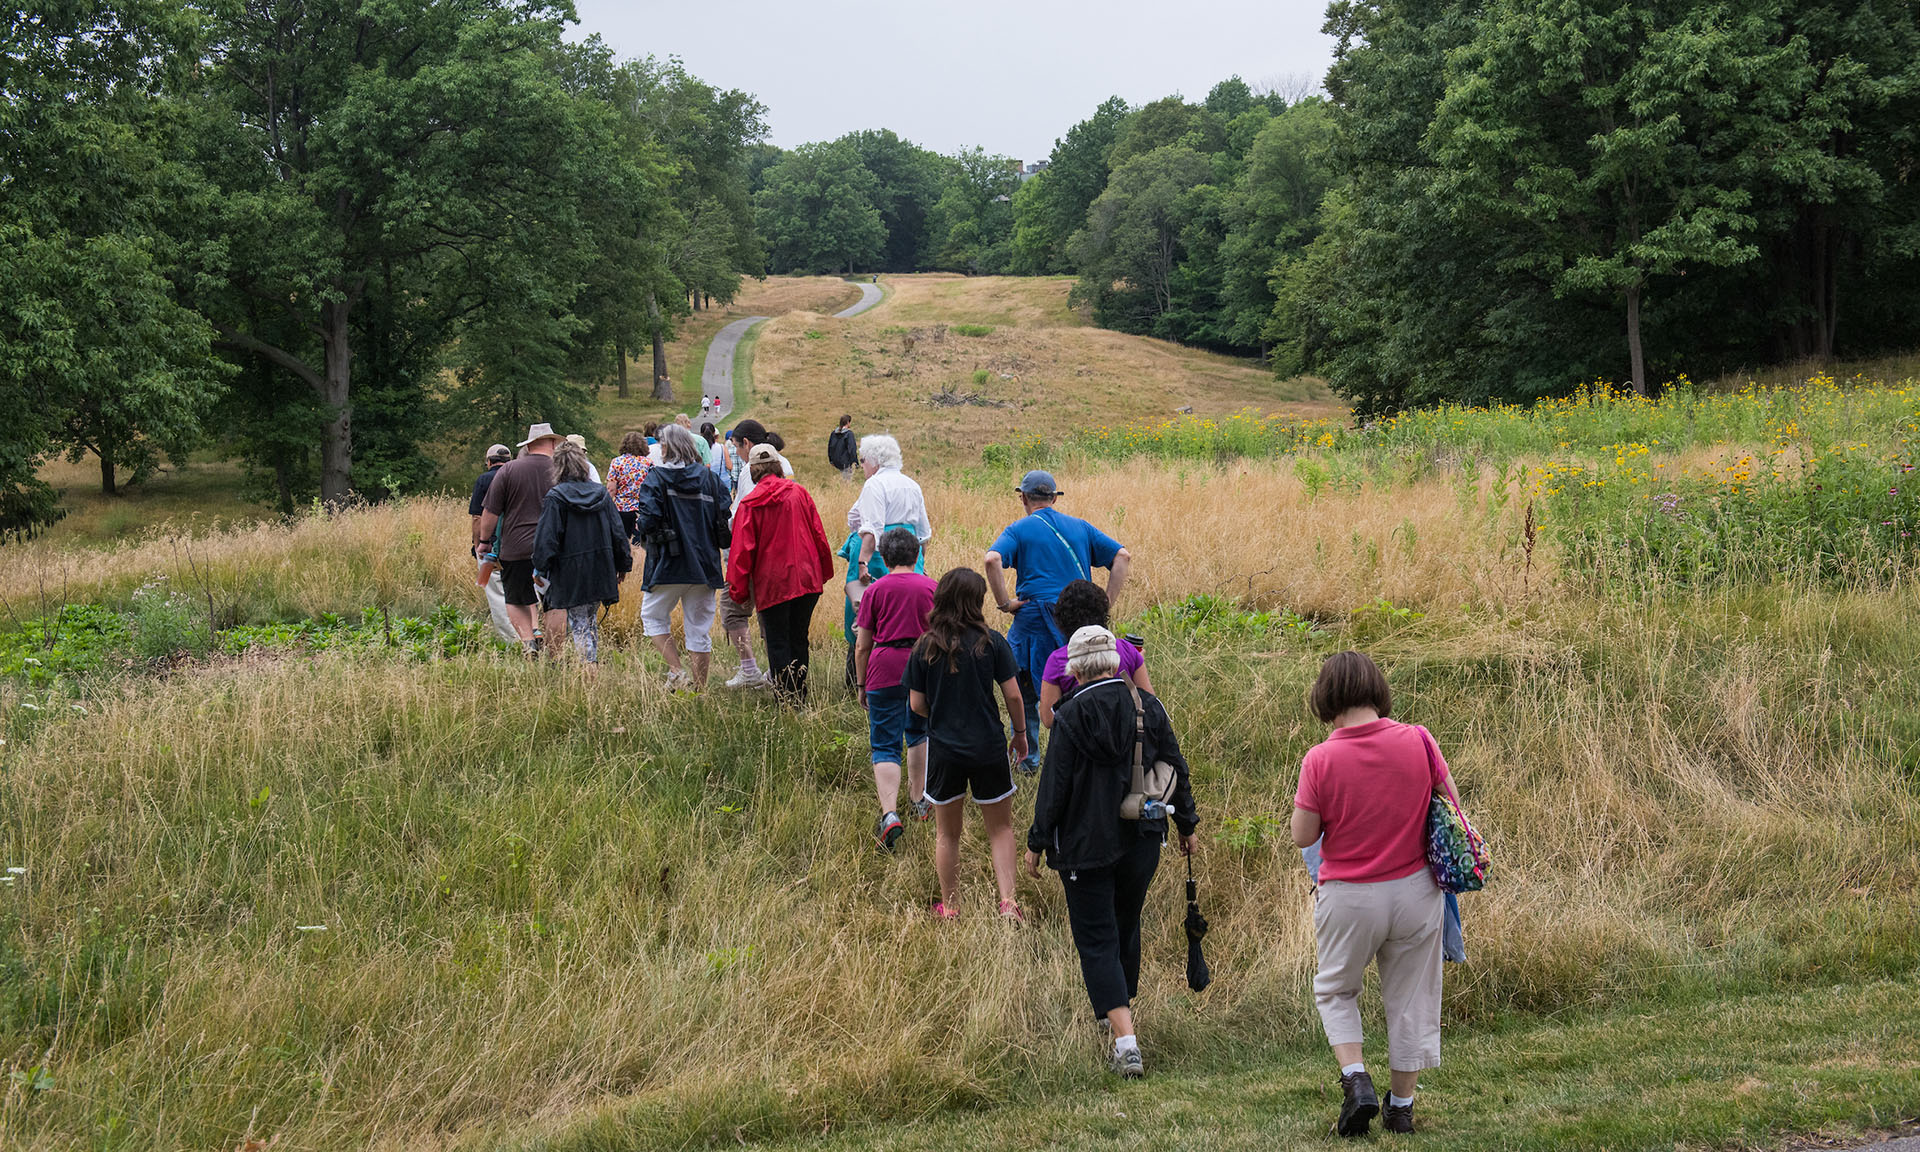 A Group Walking through the Grass at Acacia Reservation